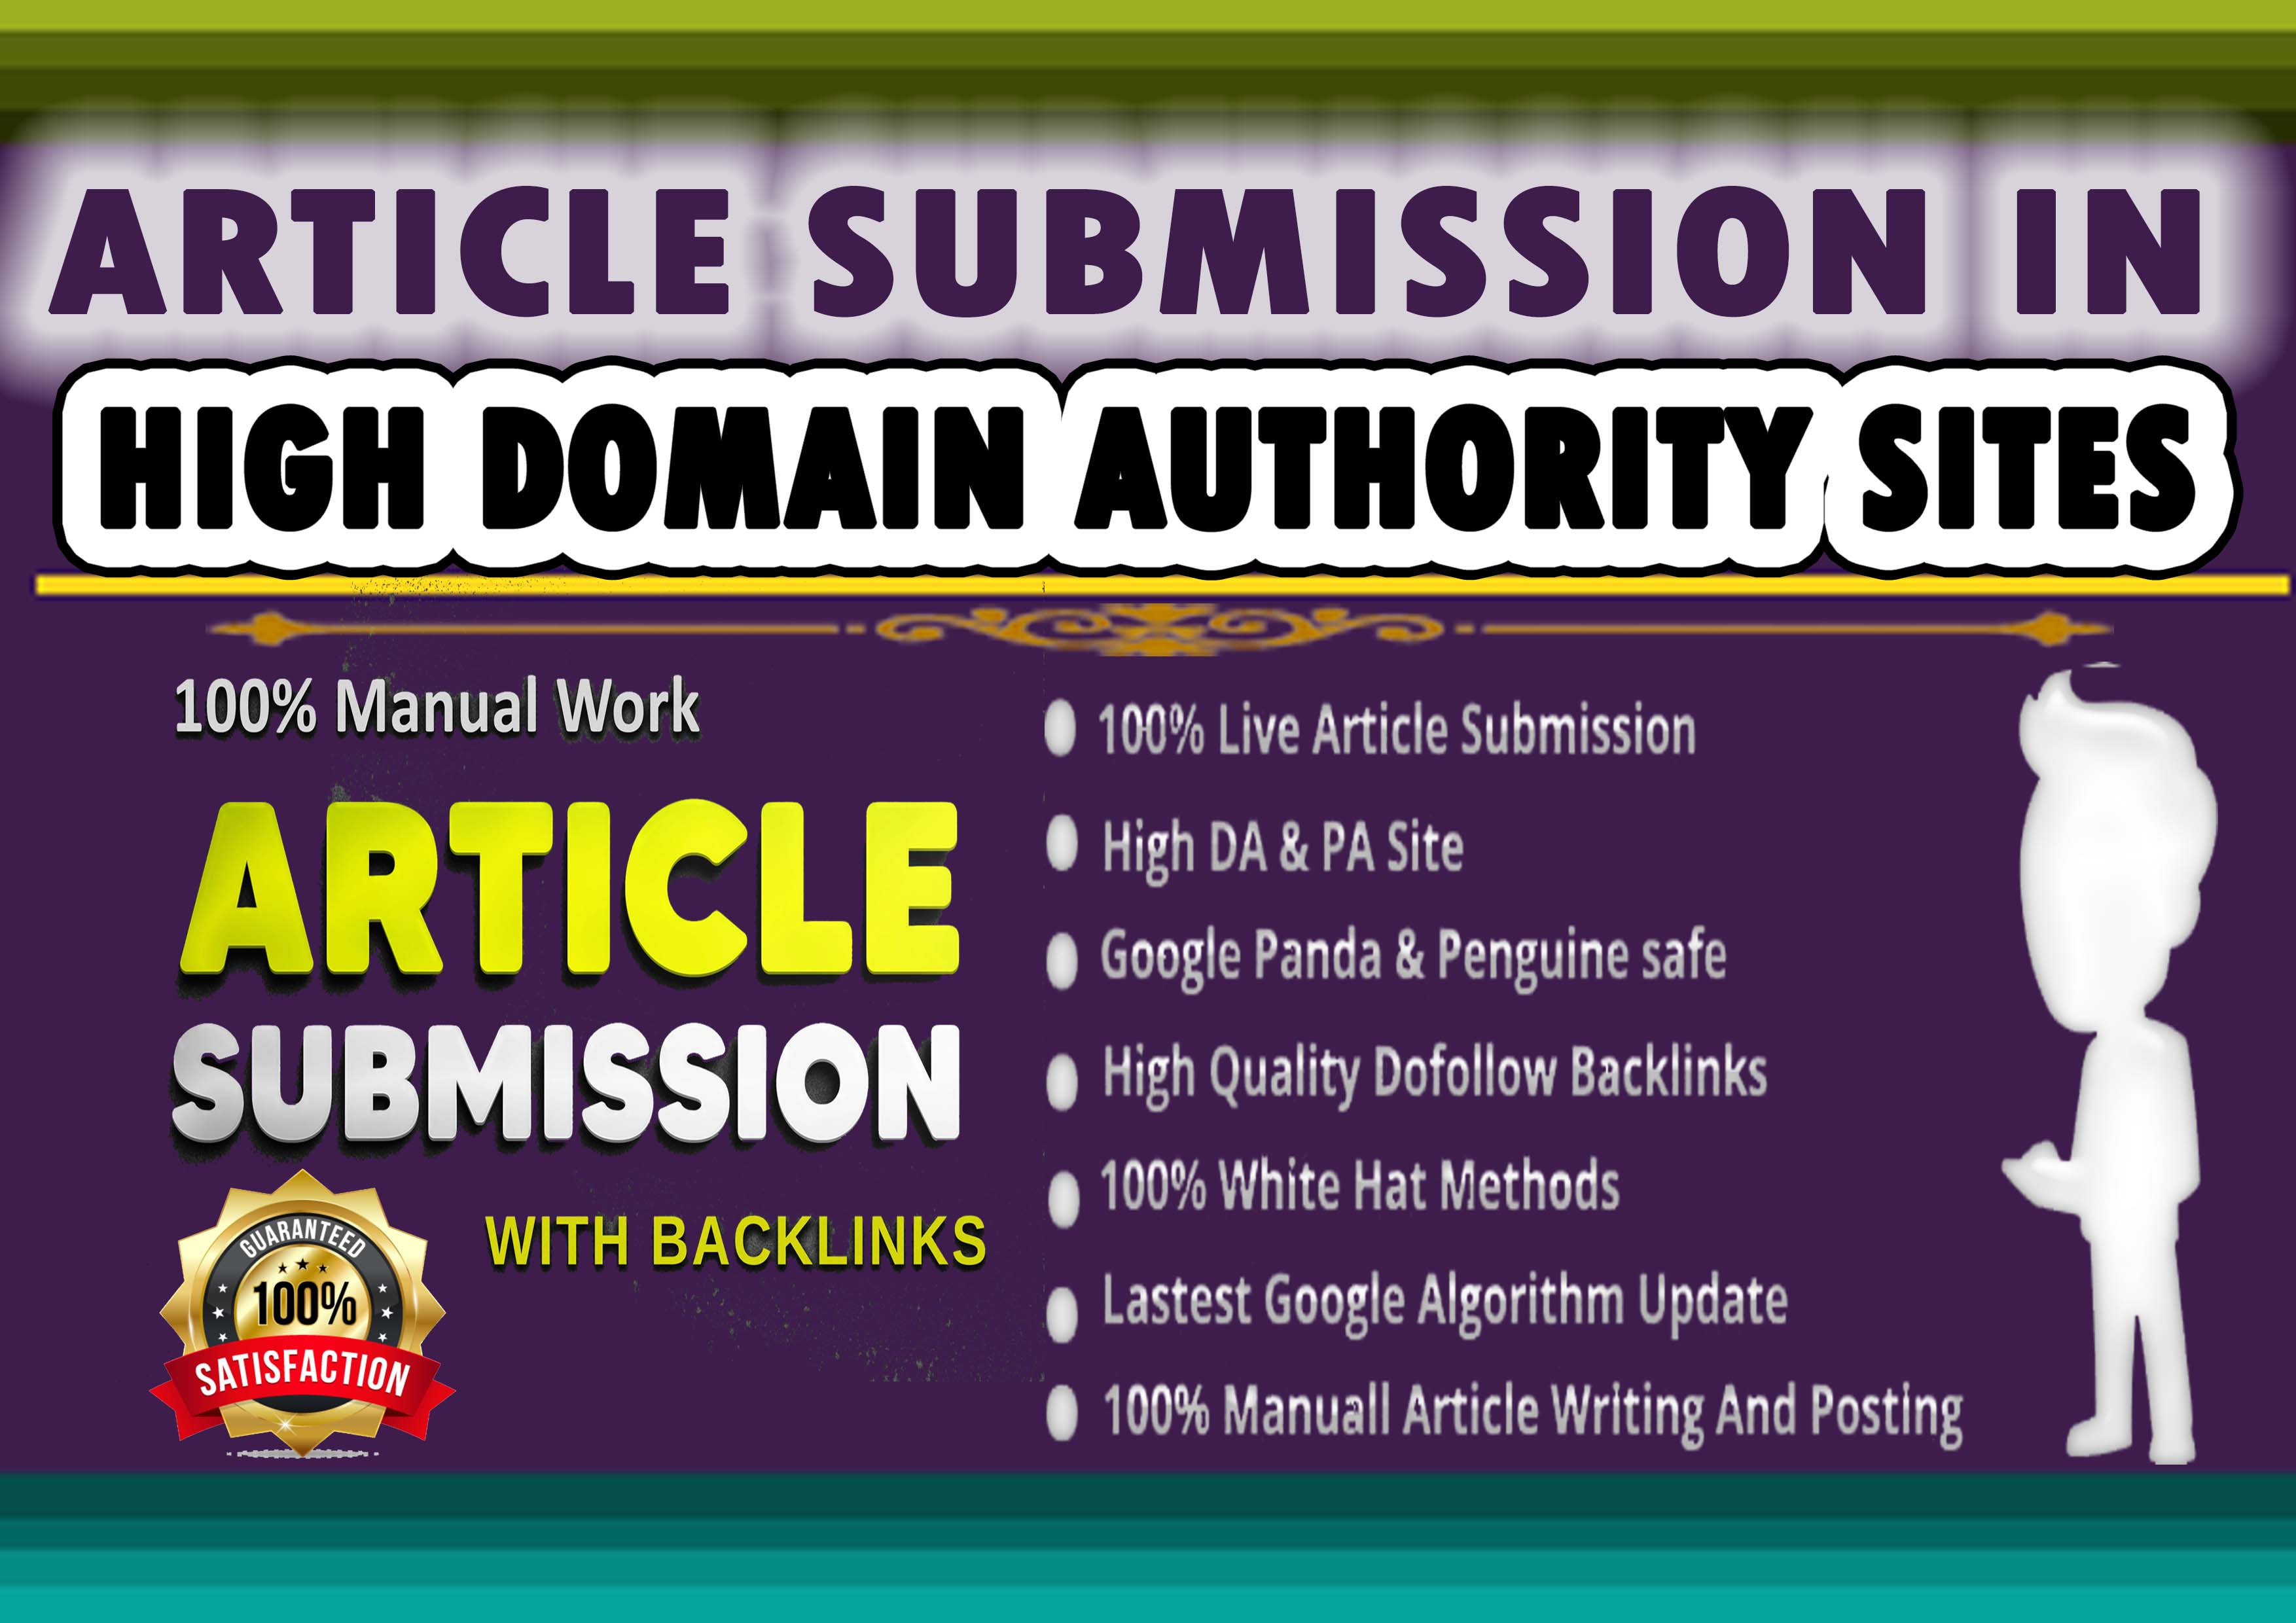 I Will Manually Submit Article 100 HQ Article Submission Website & Approved Link Report In 24 h